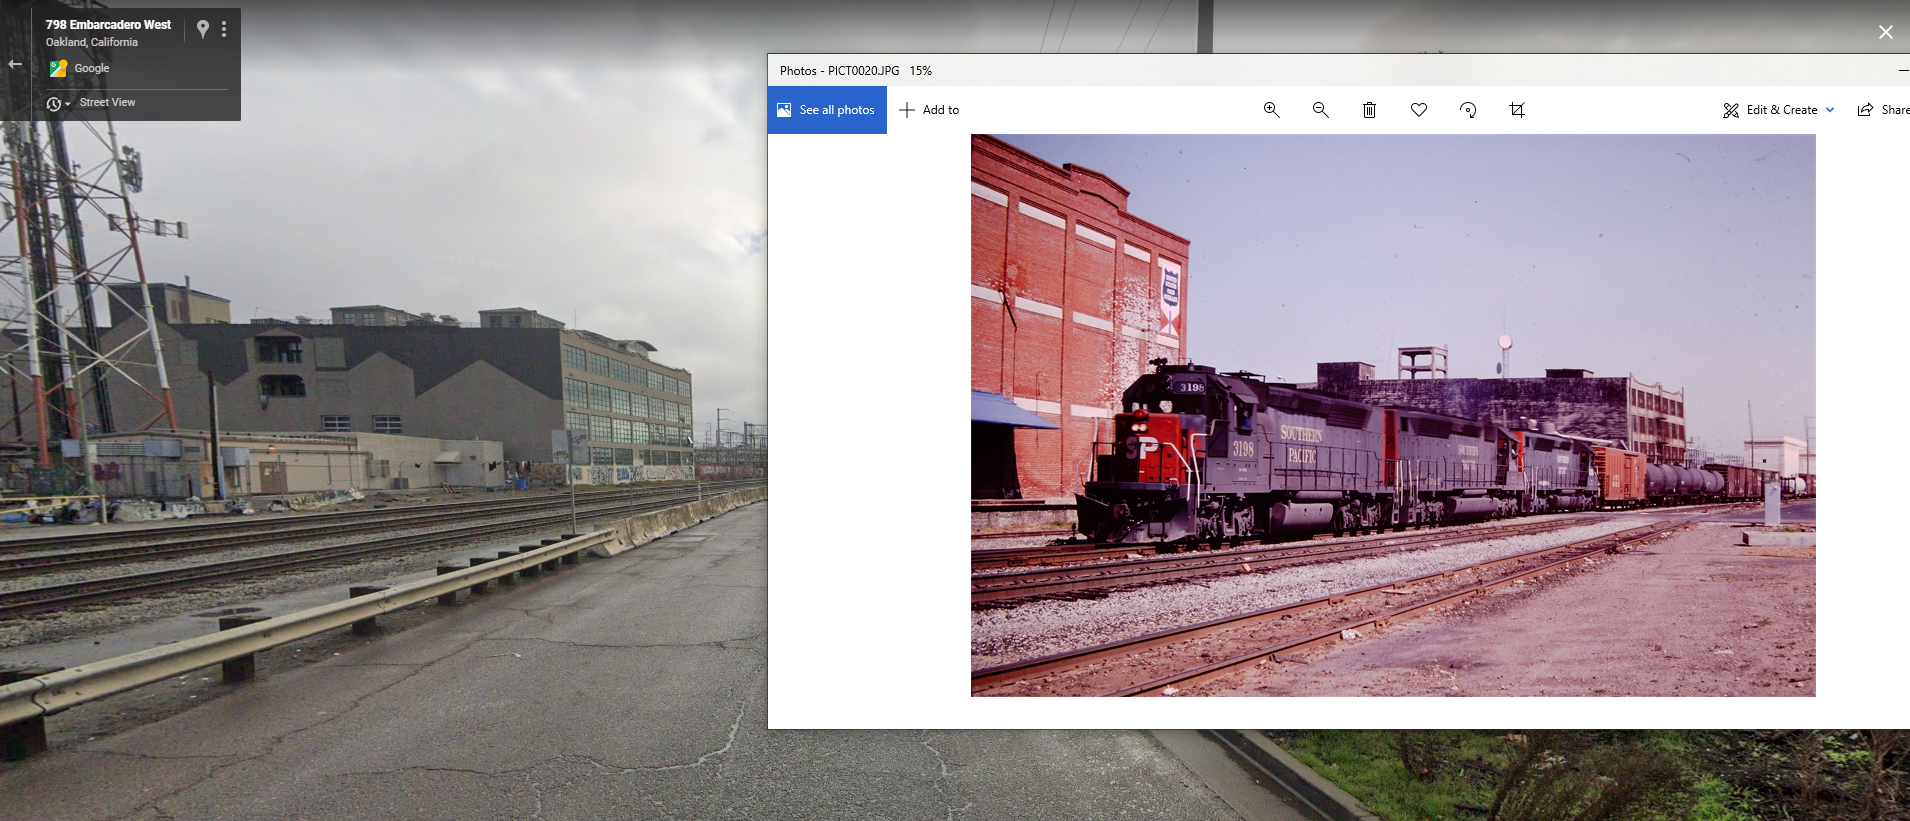 Now and then image of the Feb 1984 and Google Street View in April 2011